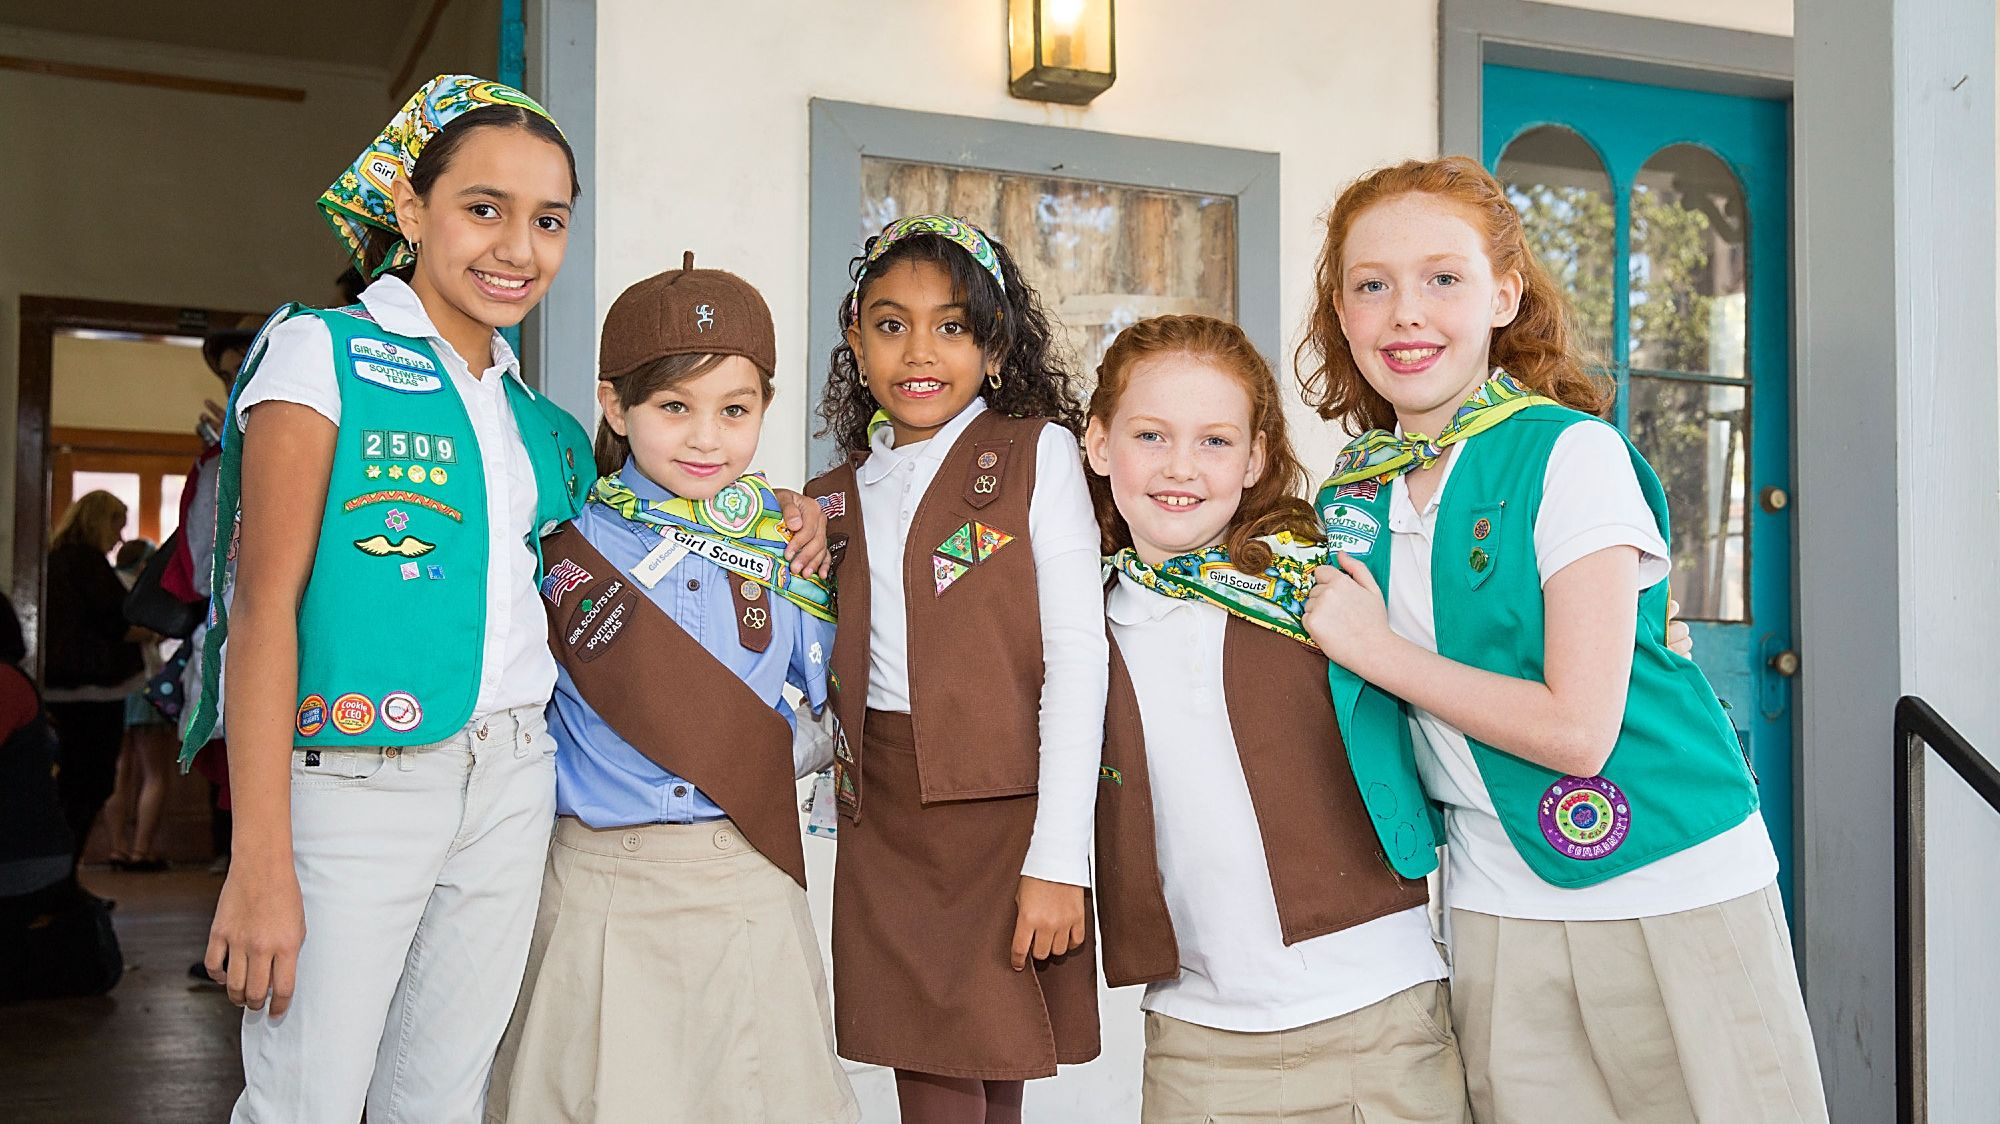 8 Fascinating Facts About Girl Scouts